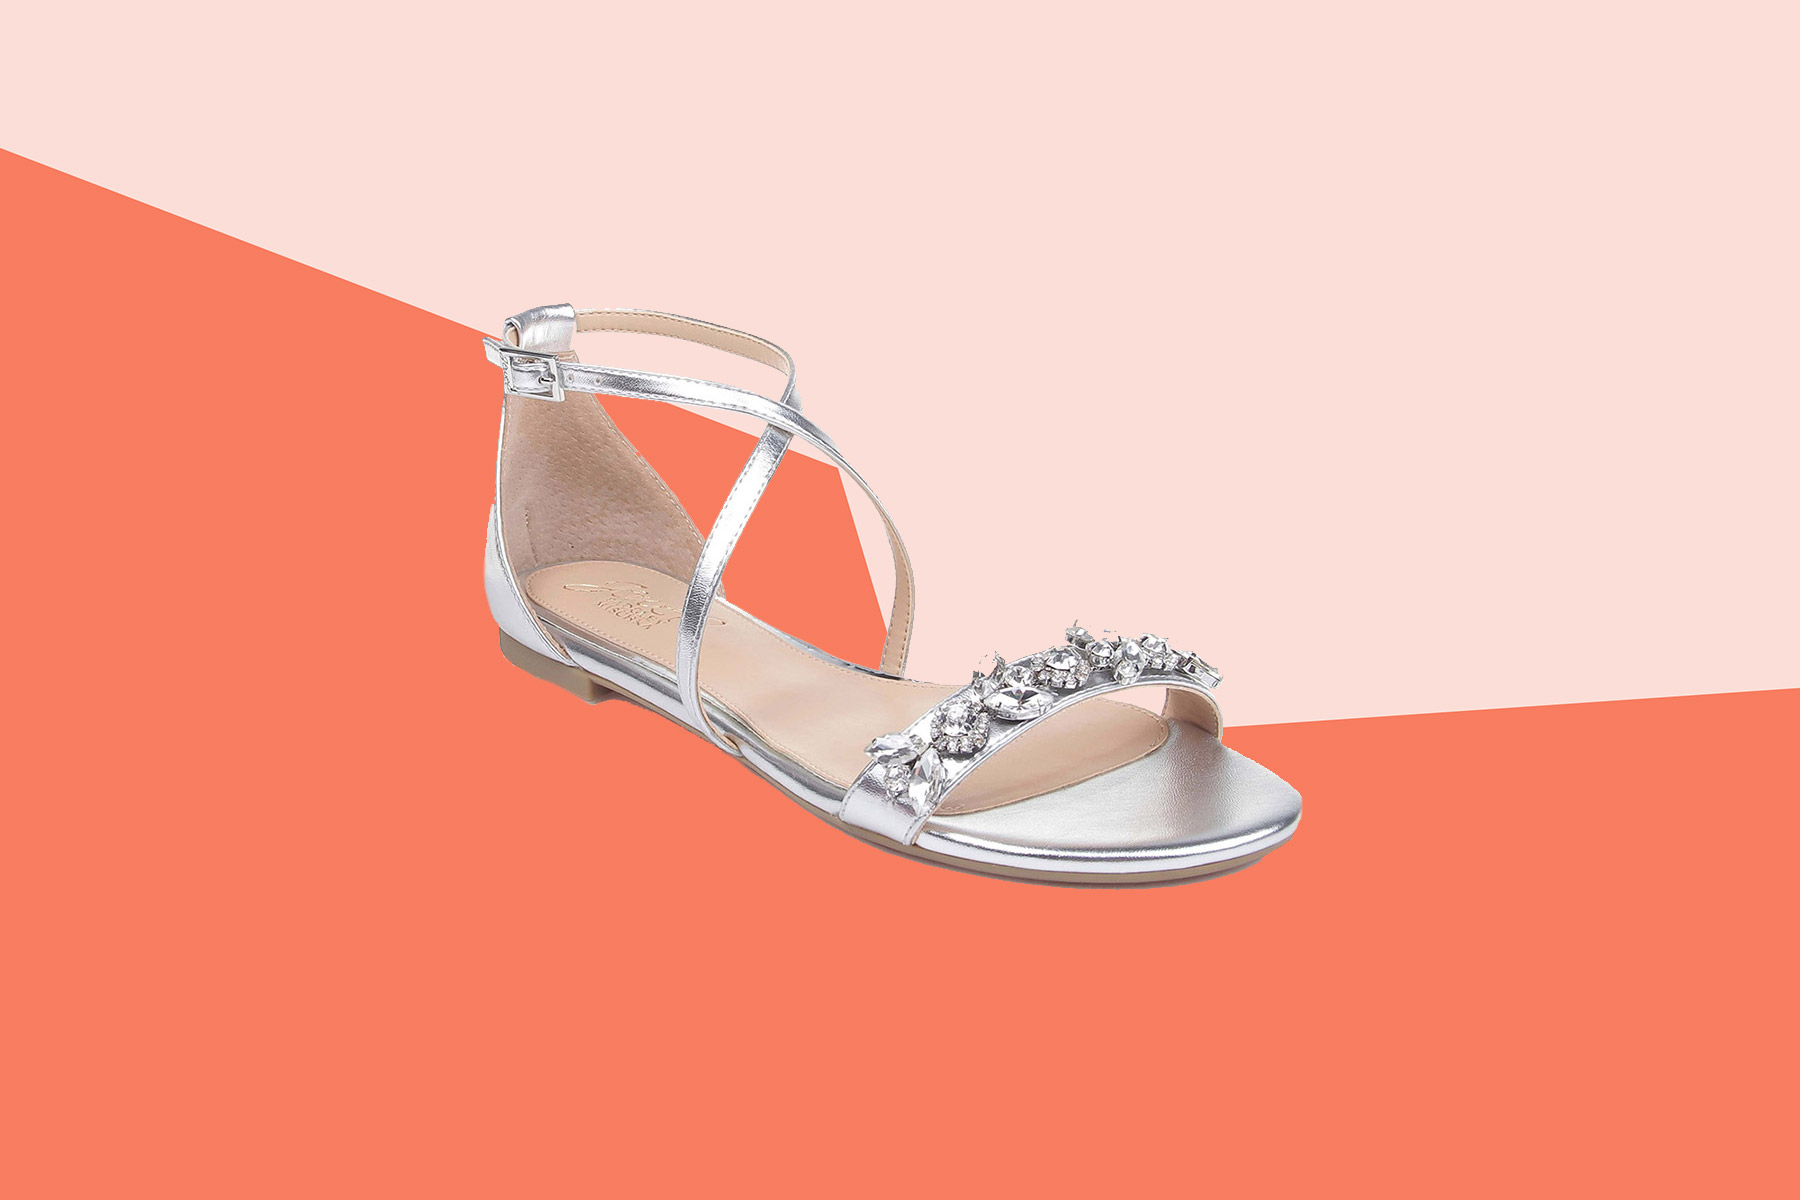 9 Gorgeous Wedding Flats Every Bride Will Love—and Never Want to Take Off